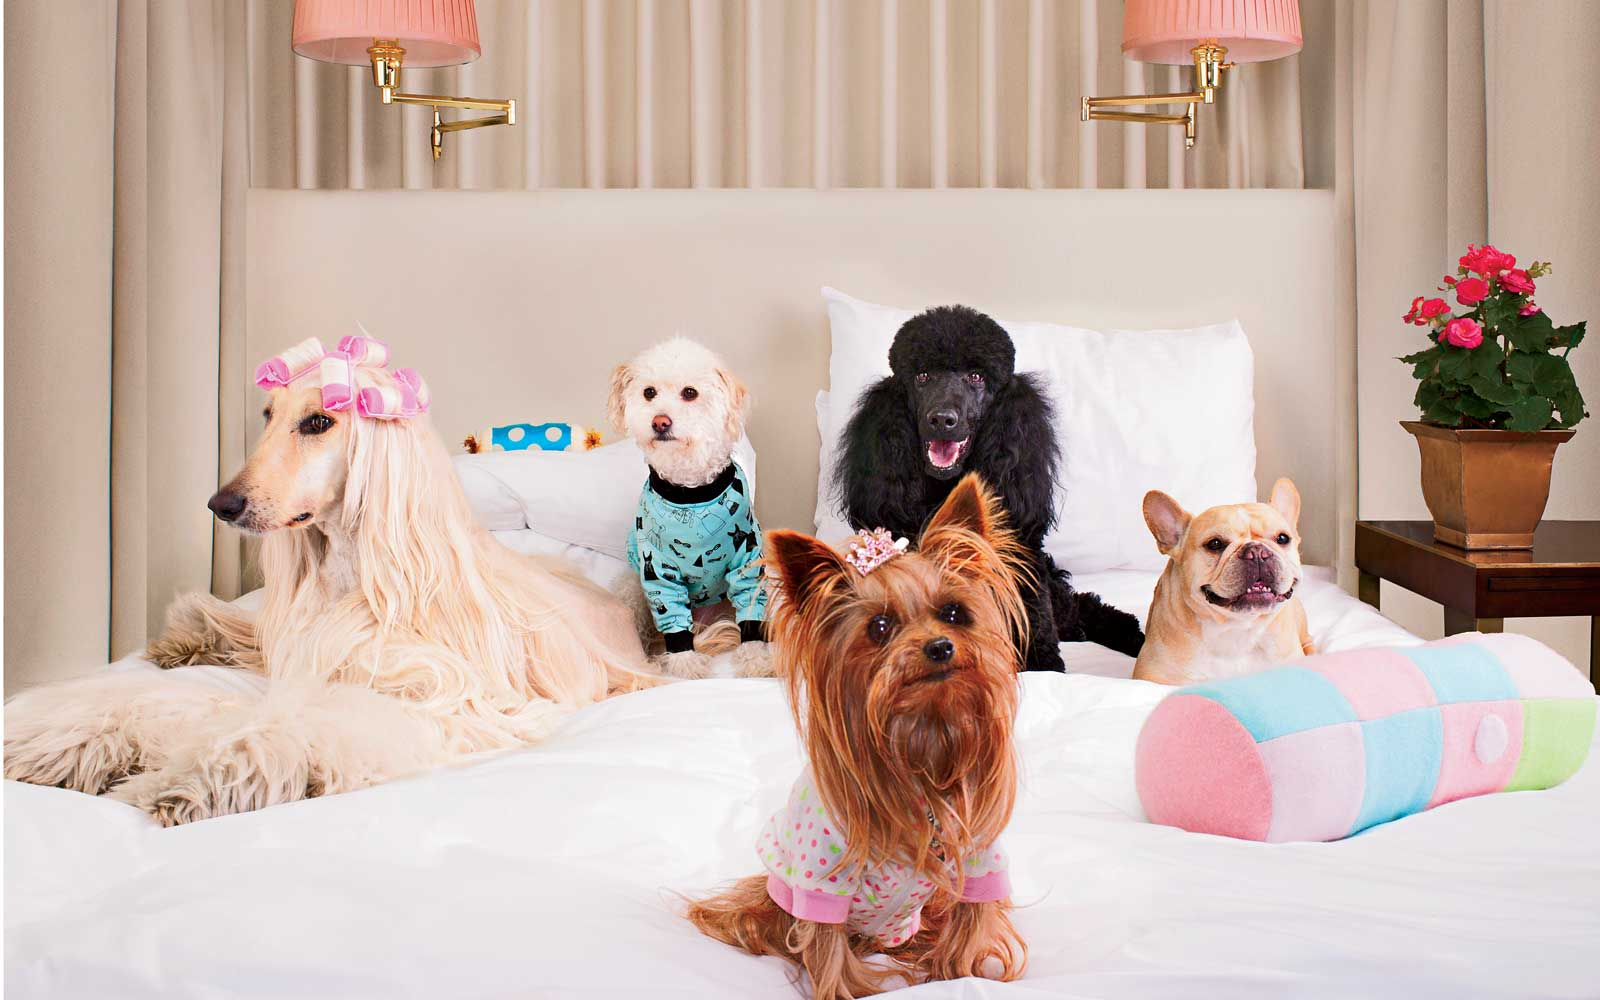 Hilton Canopy Dogs on Bed Hotel